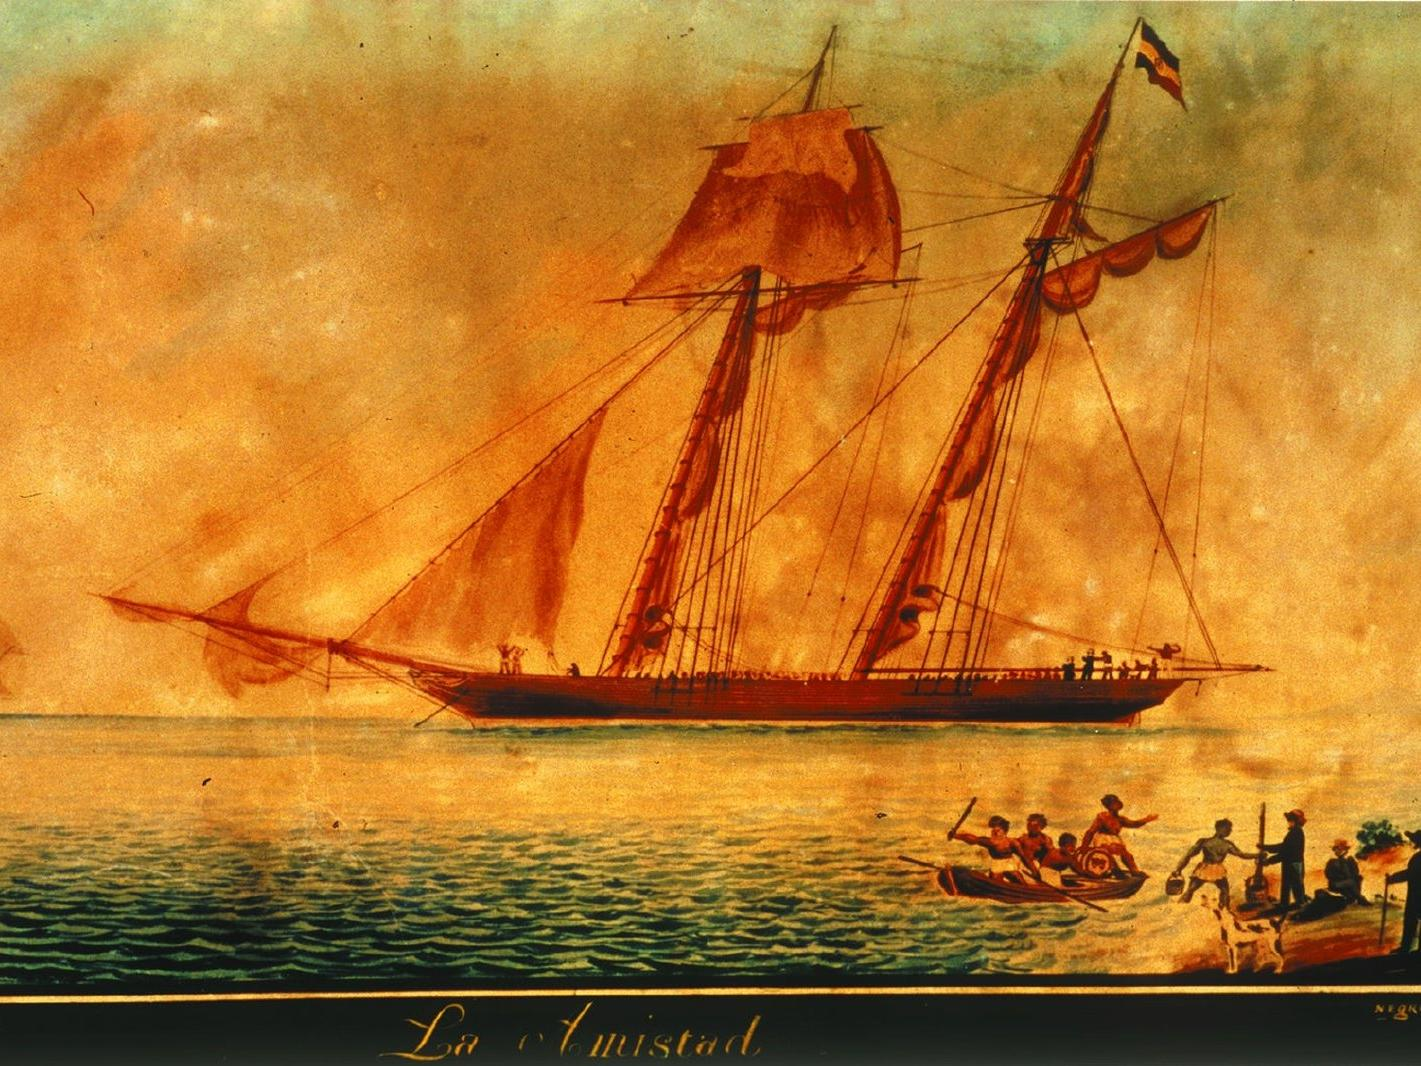 painting of a burning ship